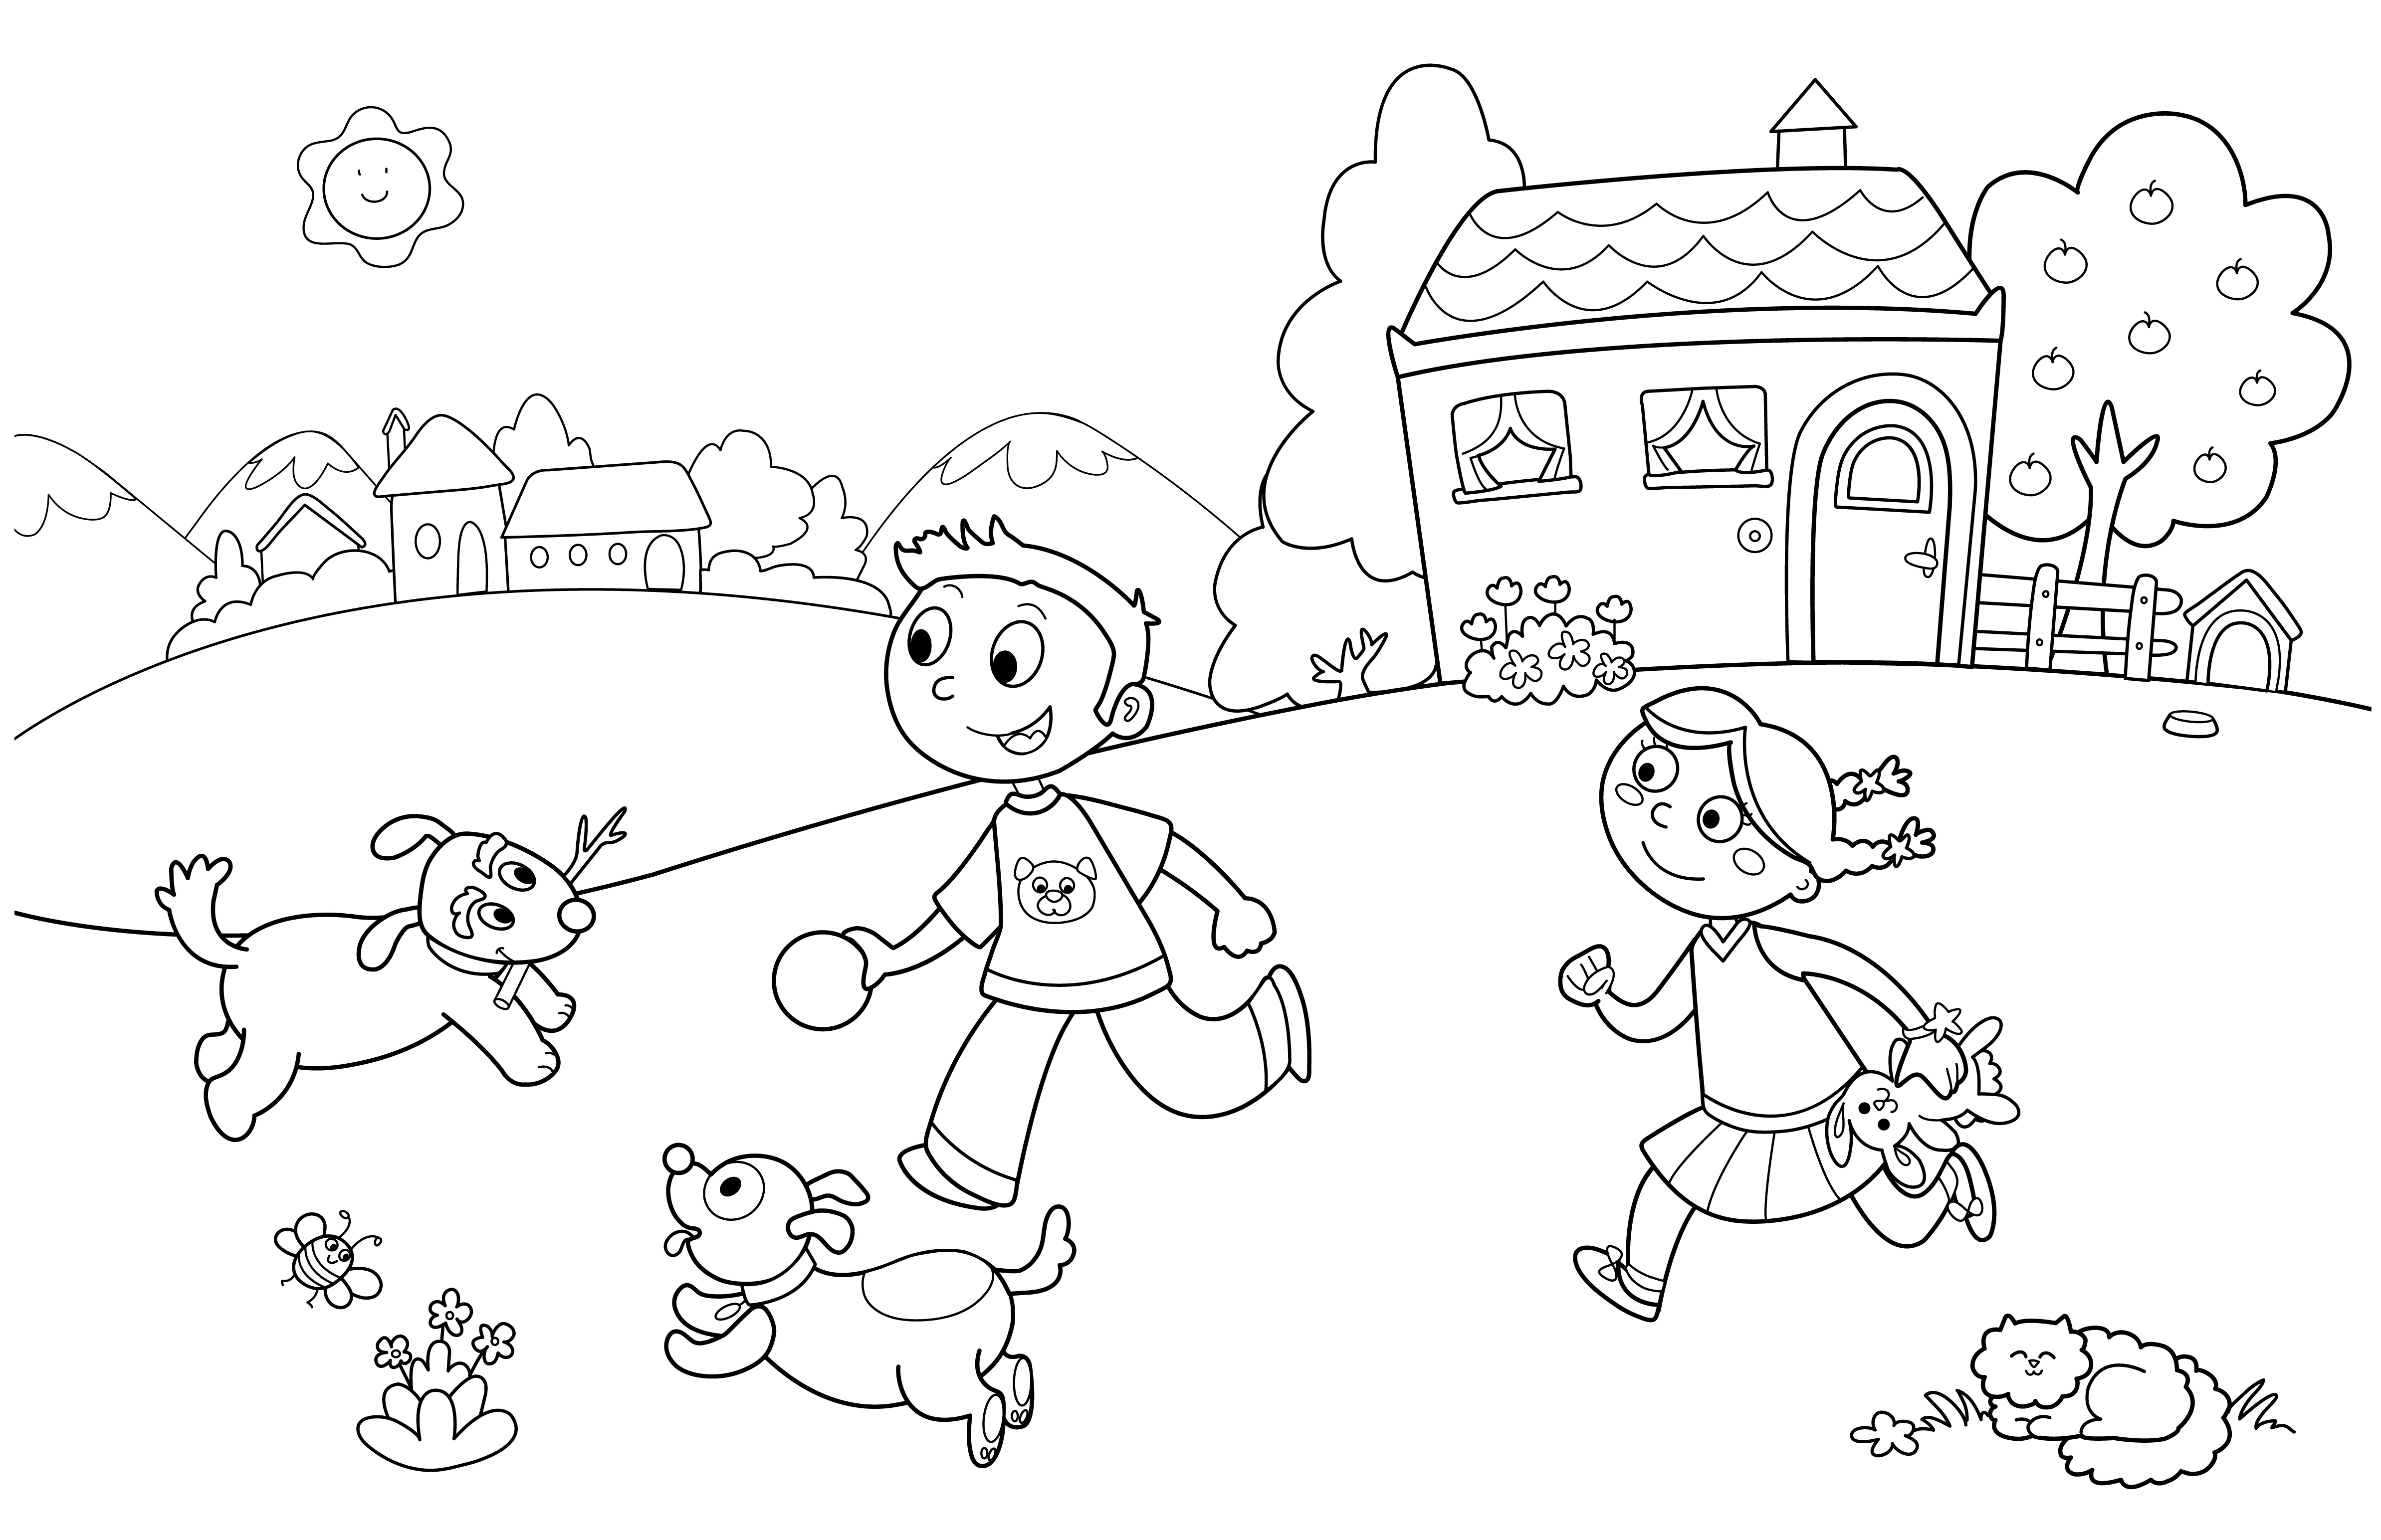 funny summer coloring pages summer fun at the beach coloring page by pages summer funny coloring